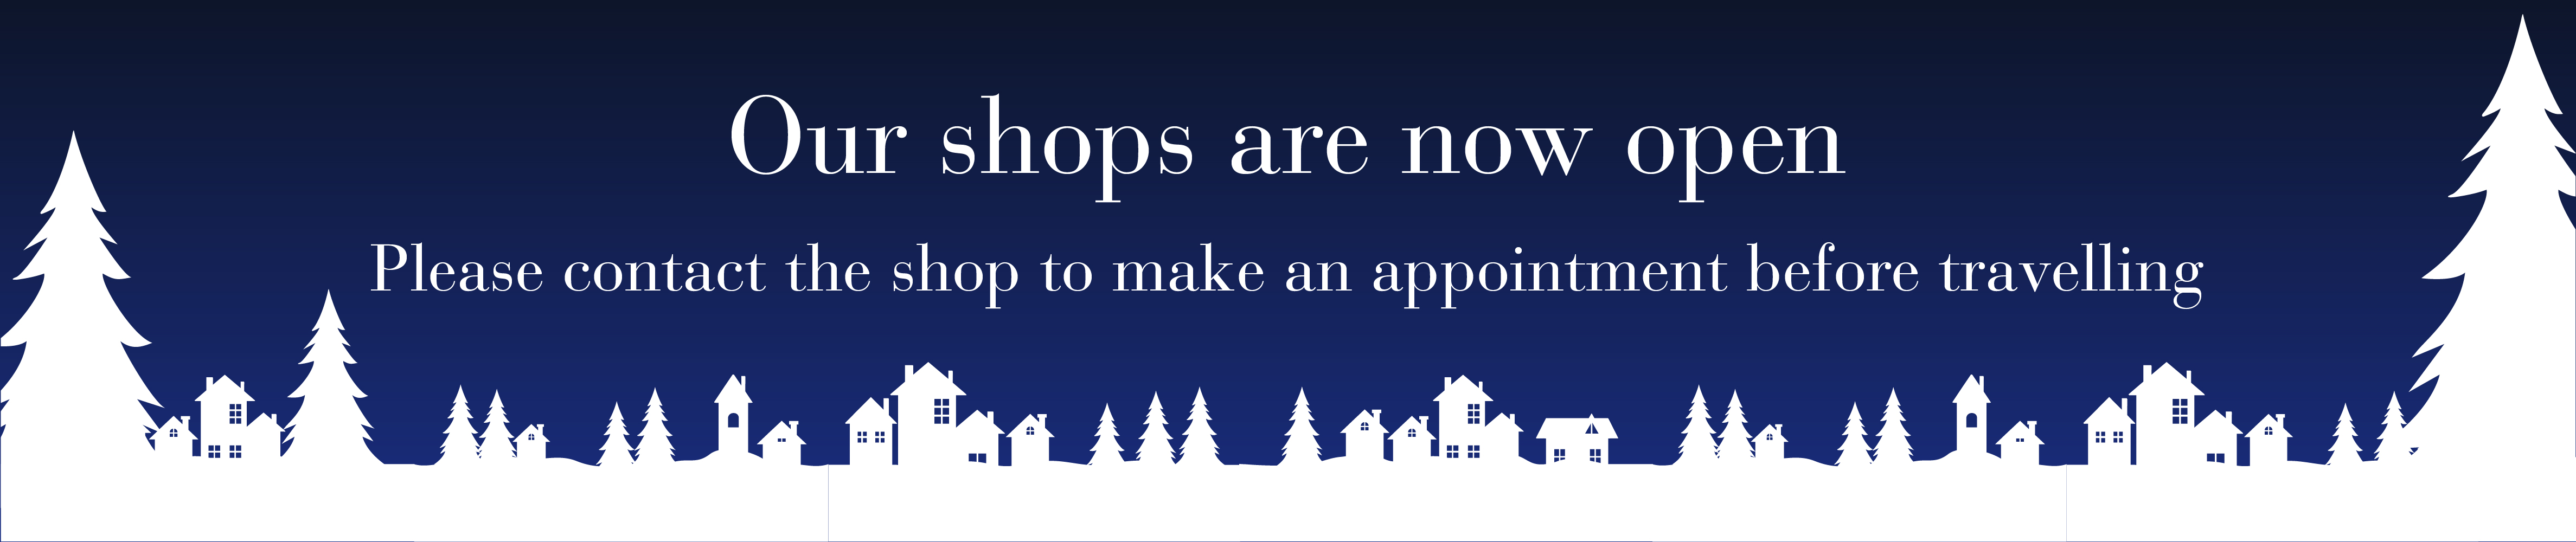 Our shops are now open. Please book an appointment before travelling.